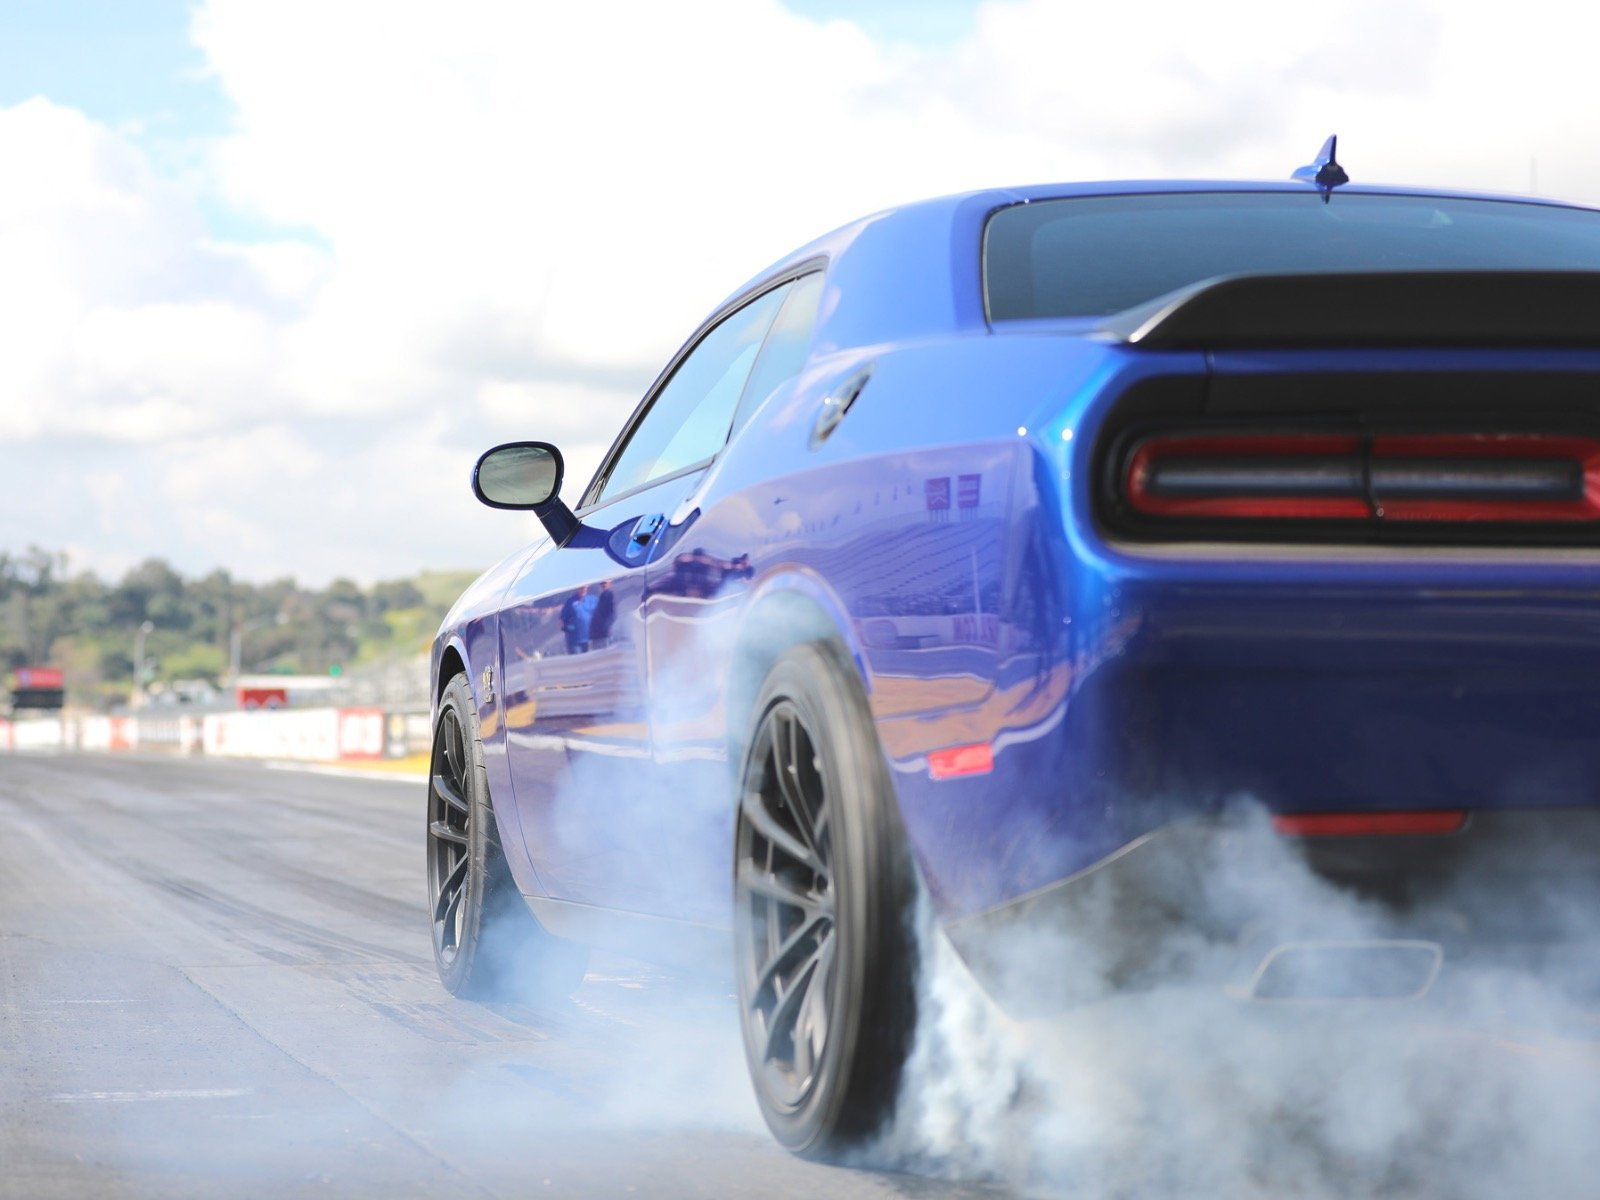 Horsepower can be exciting - but who needs it? - OnMilwaukee